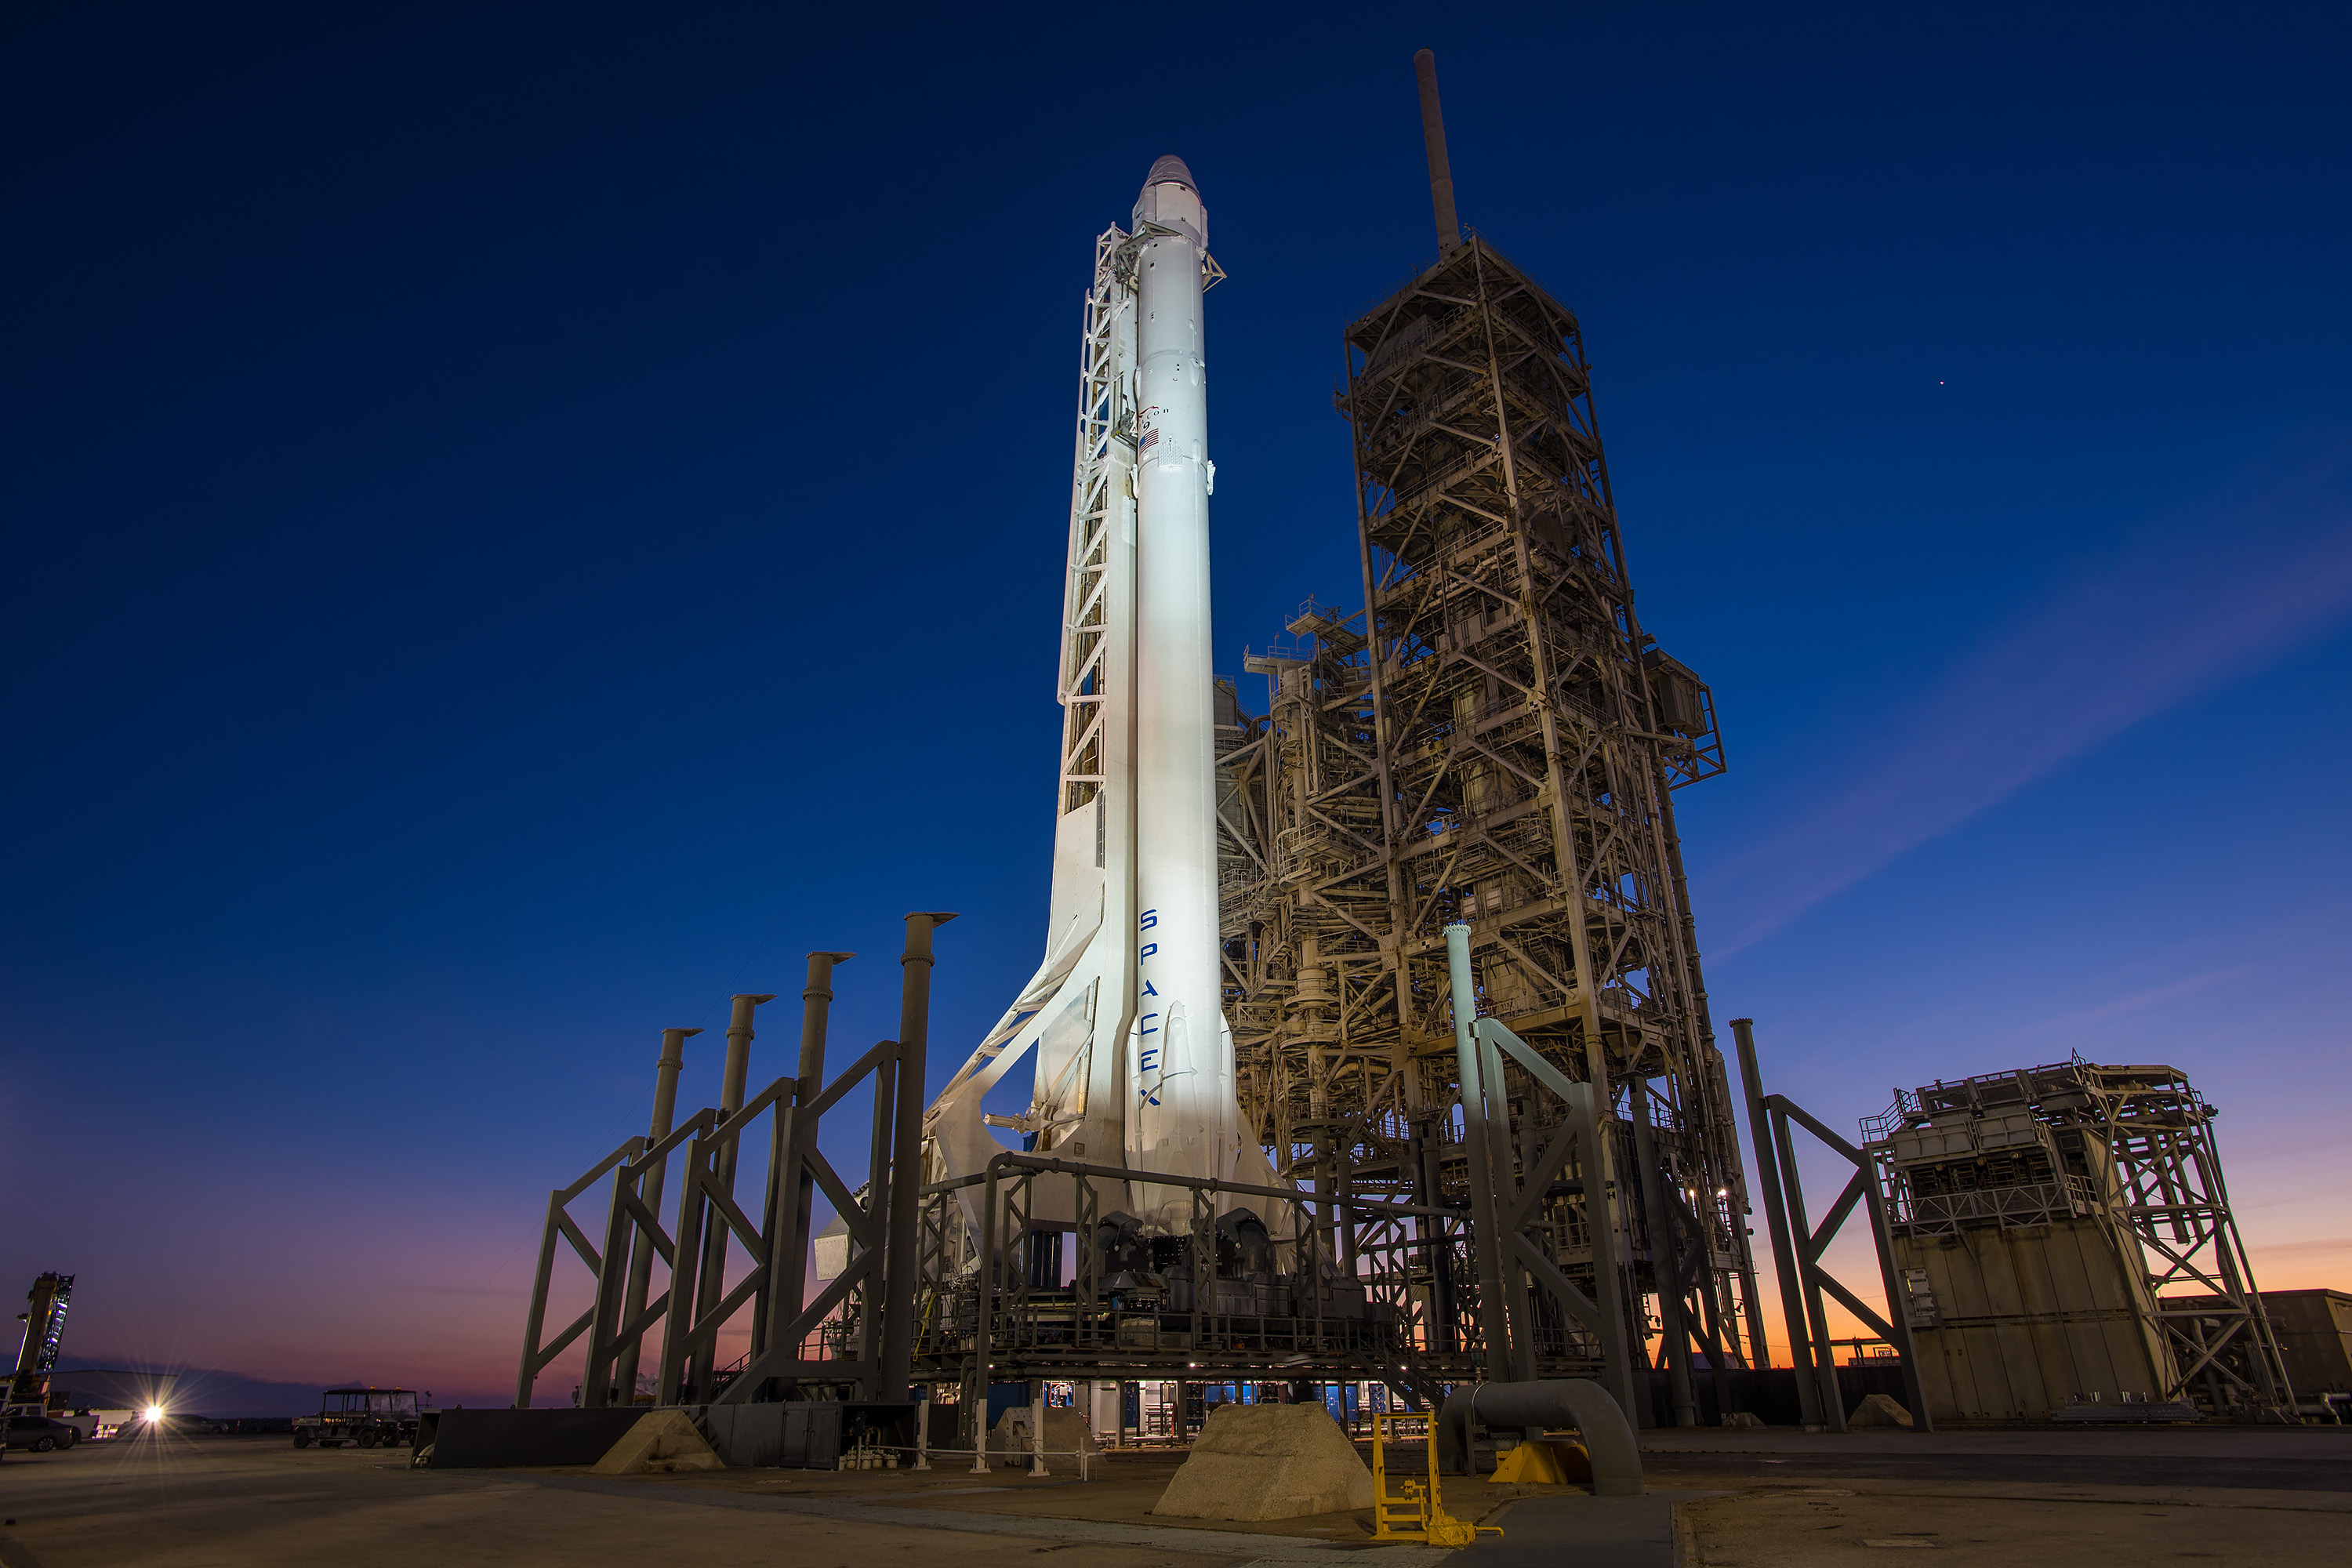 SpaceX Falcon 9 Launcher with Dragon Spacecraft